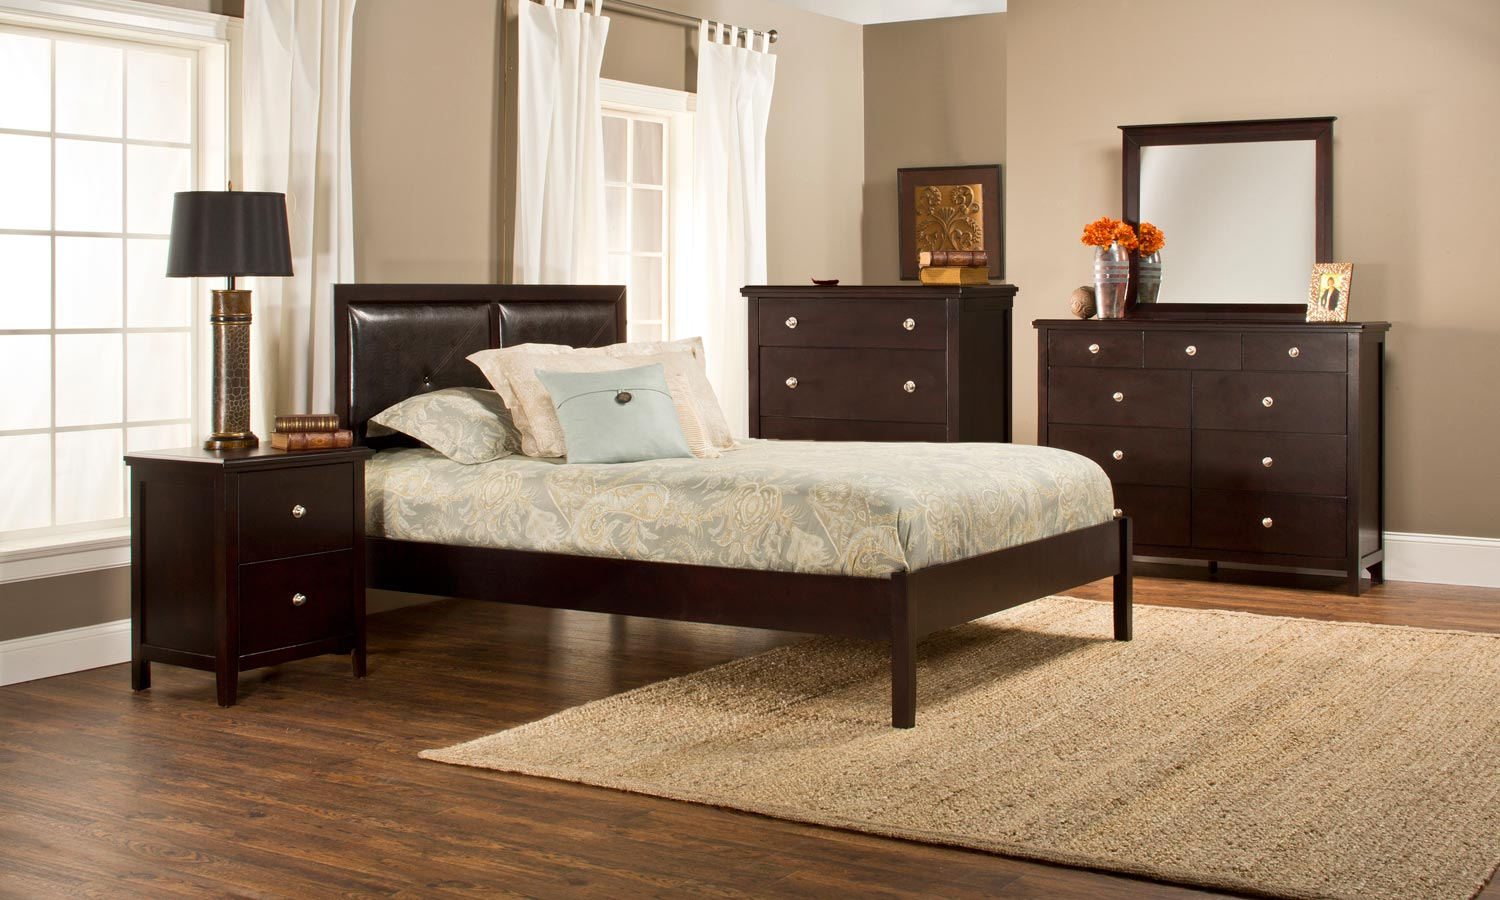 Hillsdale Metro Martin Platform 5-Piece Bedroom Collection - Dark Espresso